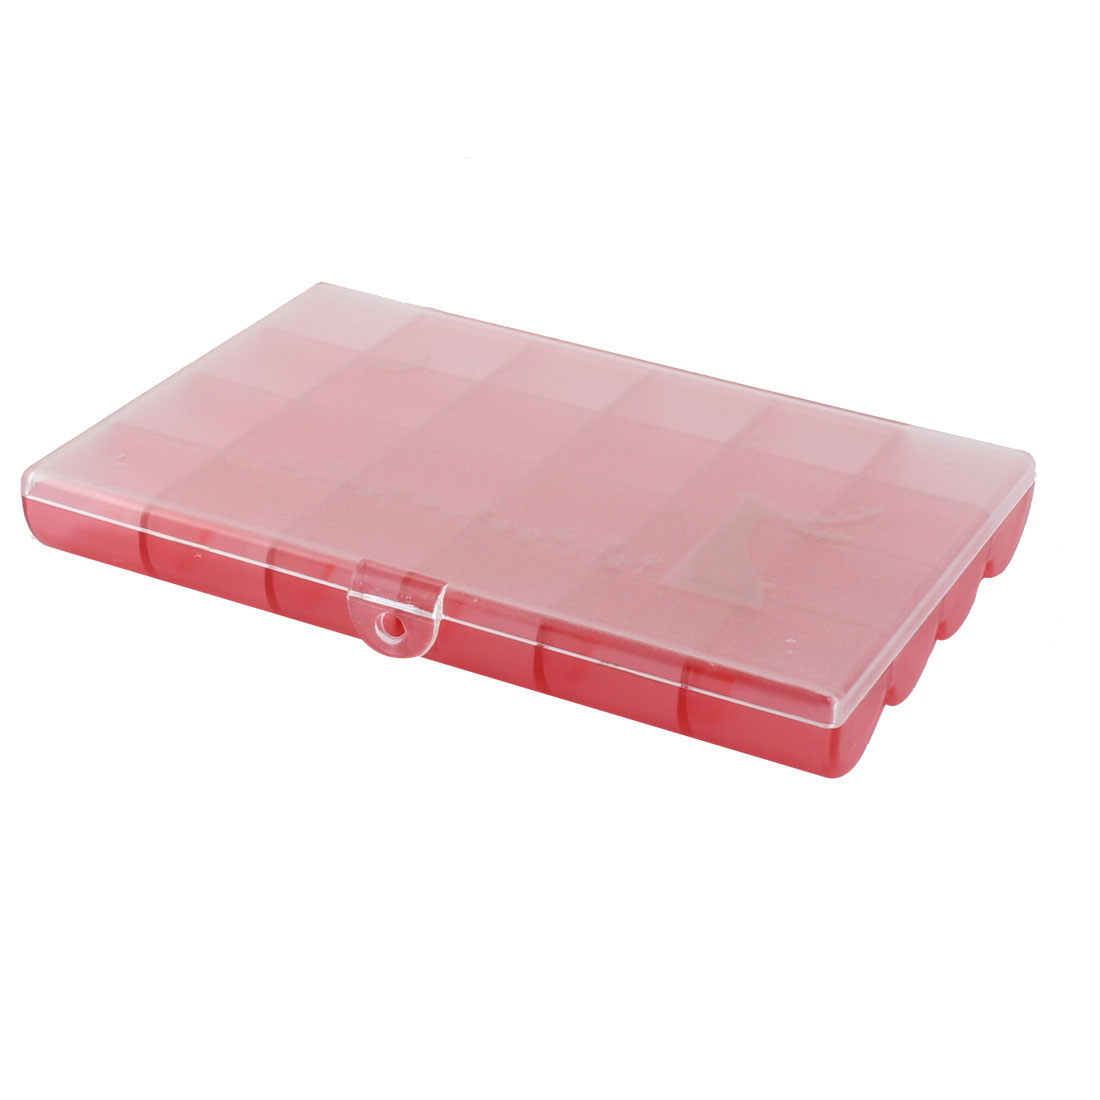 Home Plastic 24 Compartments Medicine Jewelry Box Organizer Holder Clear Red